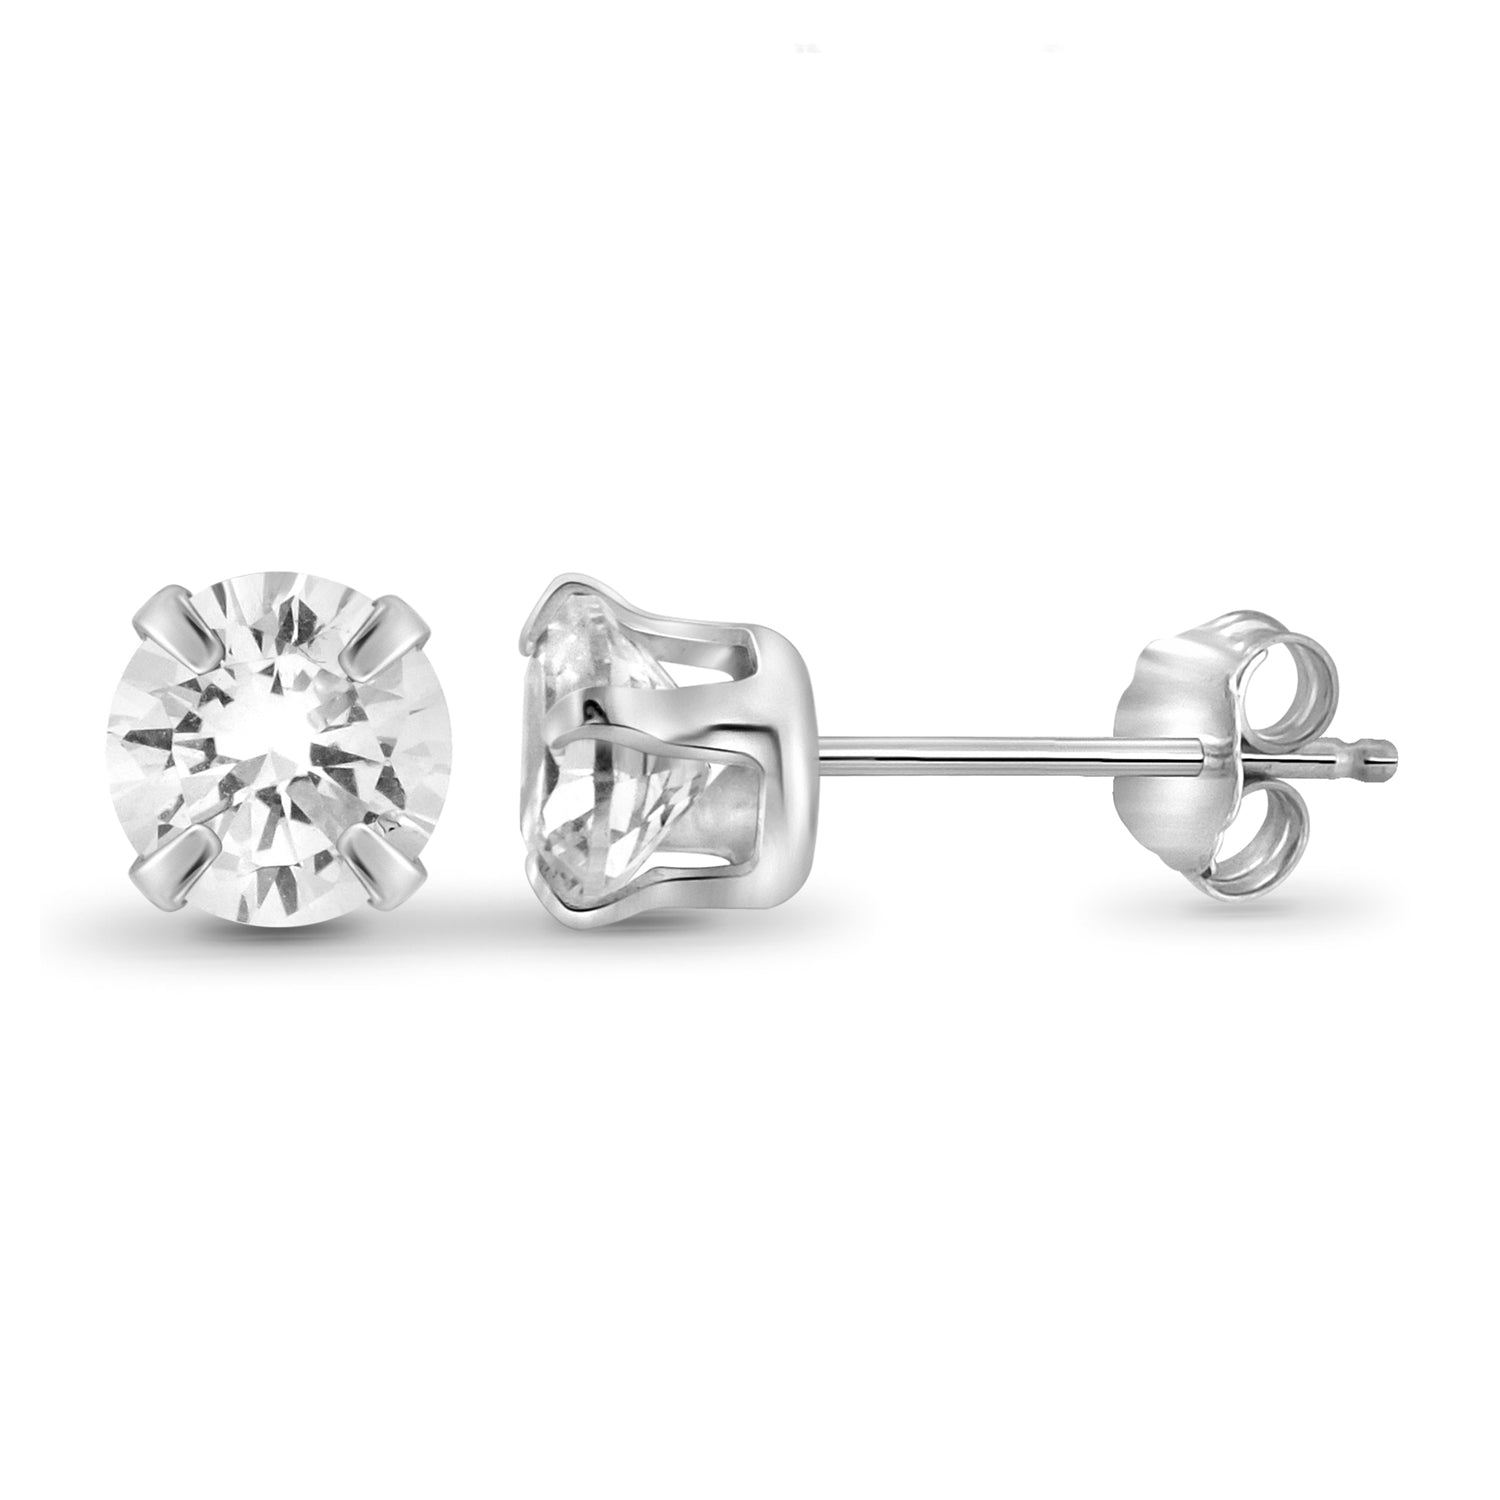 White Cubic Zirconia Sophia Studs in Platinum-Plated Sterling Silver